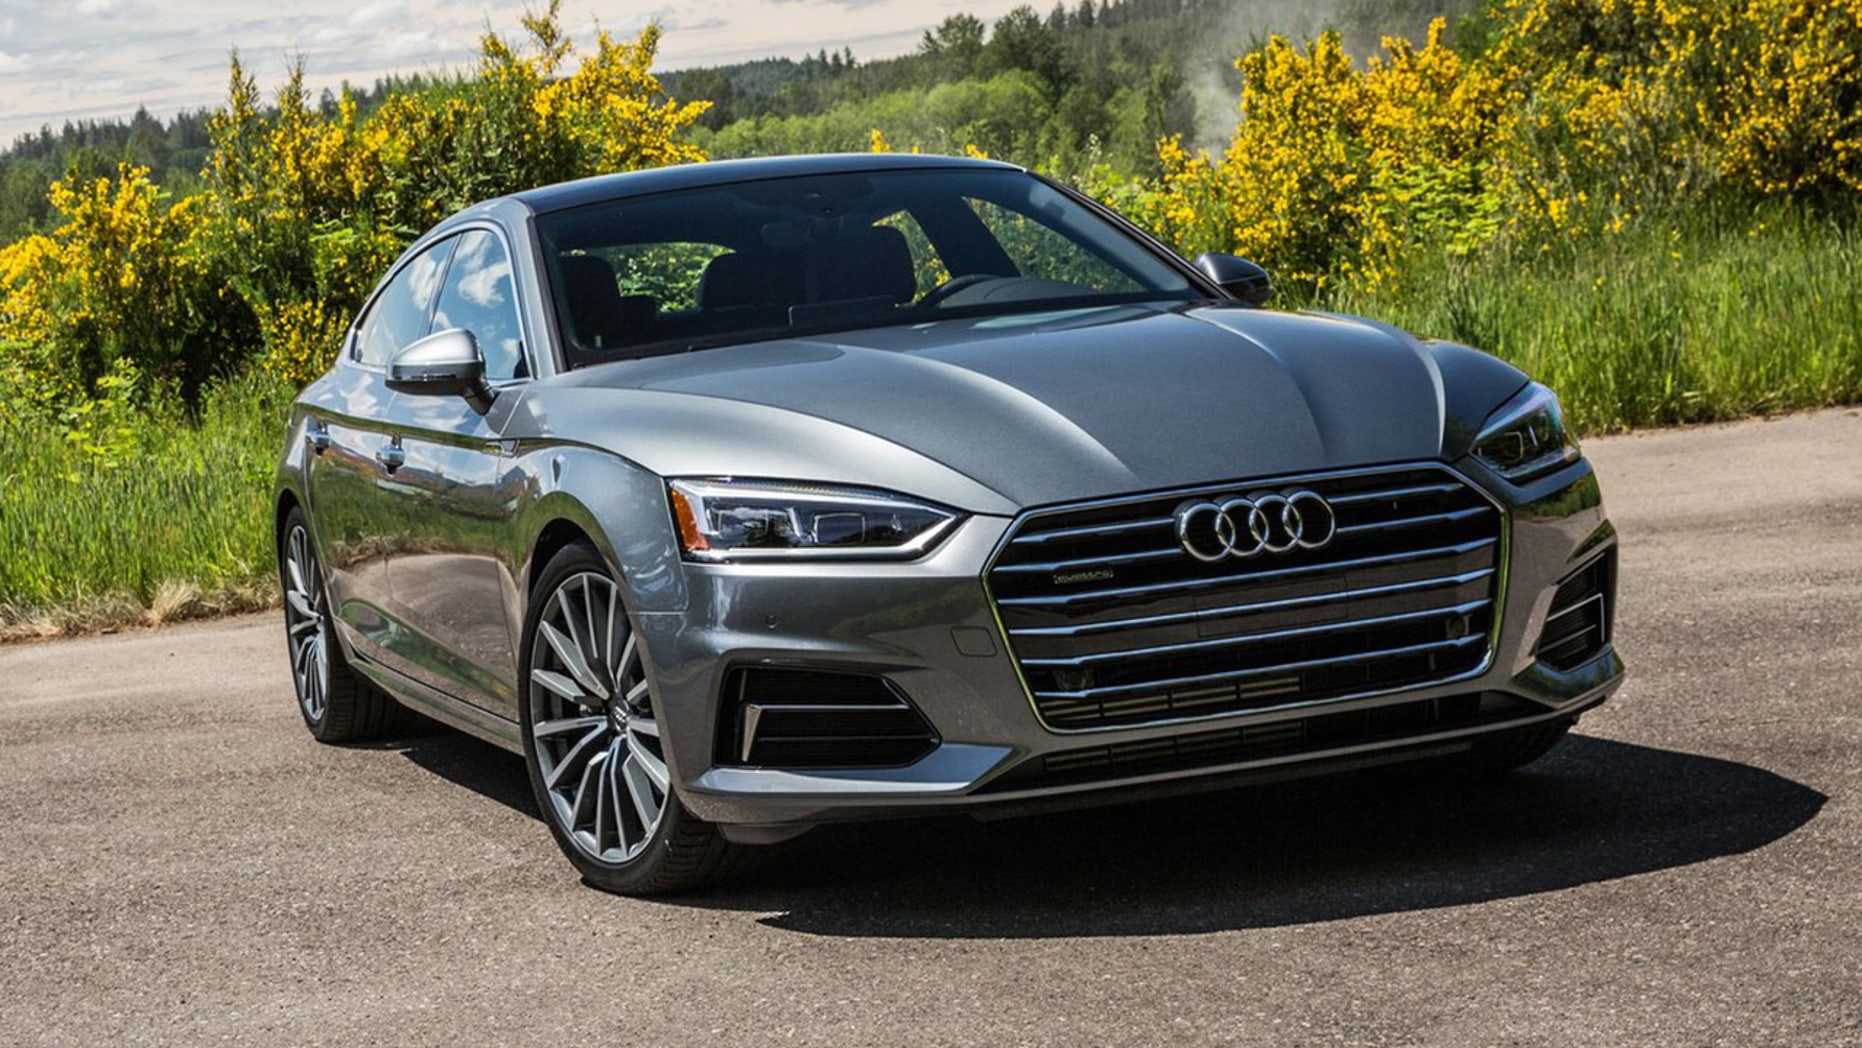 Audi Recalling Million Cars And SUVs For Fire Risk Fox News - Cars audi